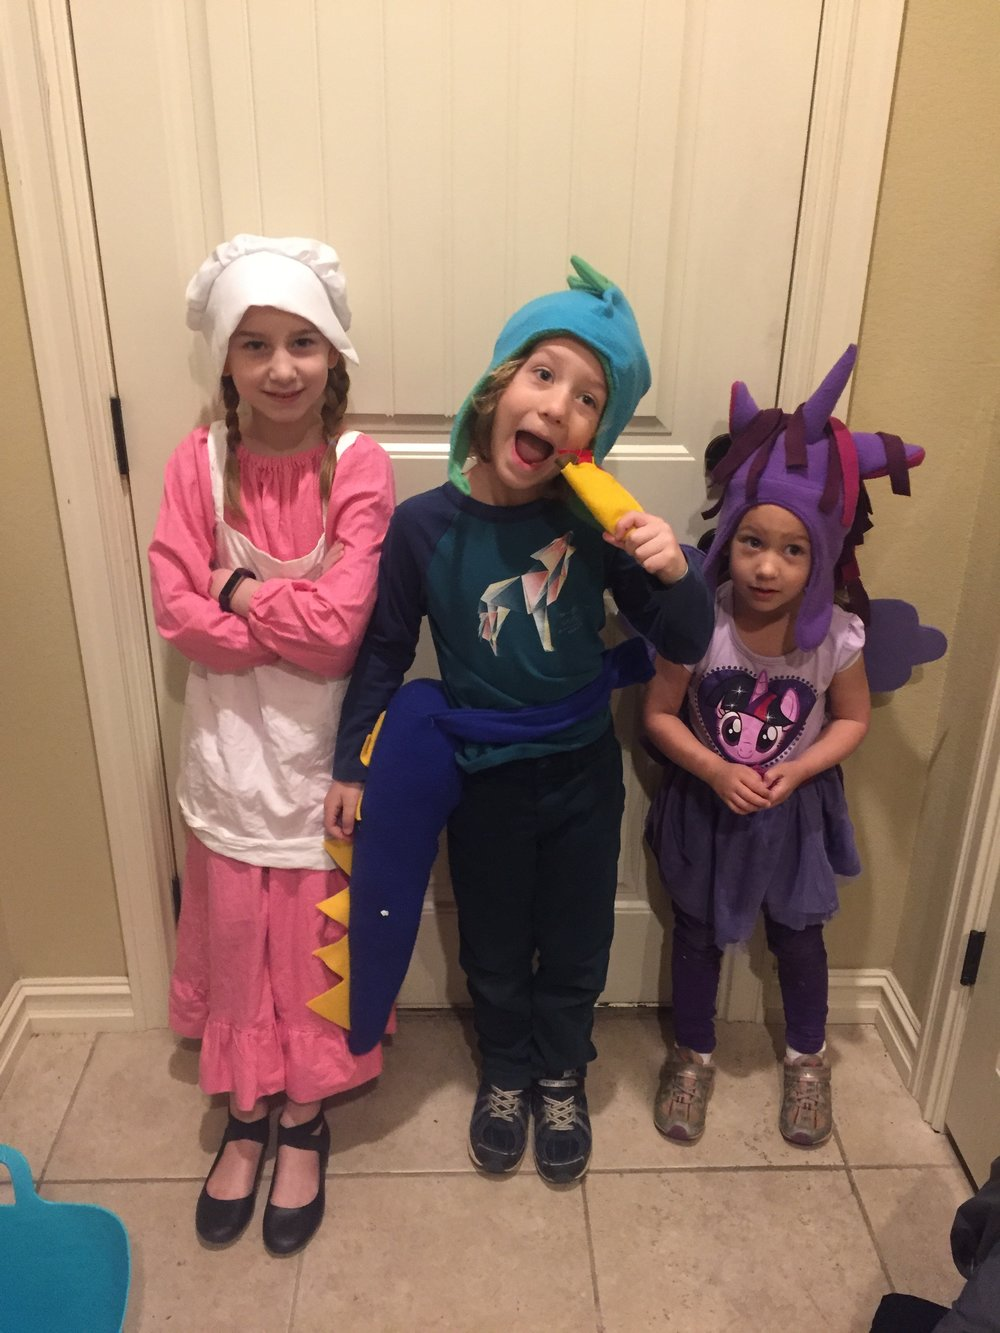 Dress like your favorite character from a book!  Laura Ingalls Wilder, Princess Twilight Sparkle, and a Dragon who LOVES Tacos!!!!! =) Donovan and I sewed up that taco very quickly to make that costume and it was SO cute!  I can't believe he's had that dino costume since his second Halloween when he was 1 year old!